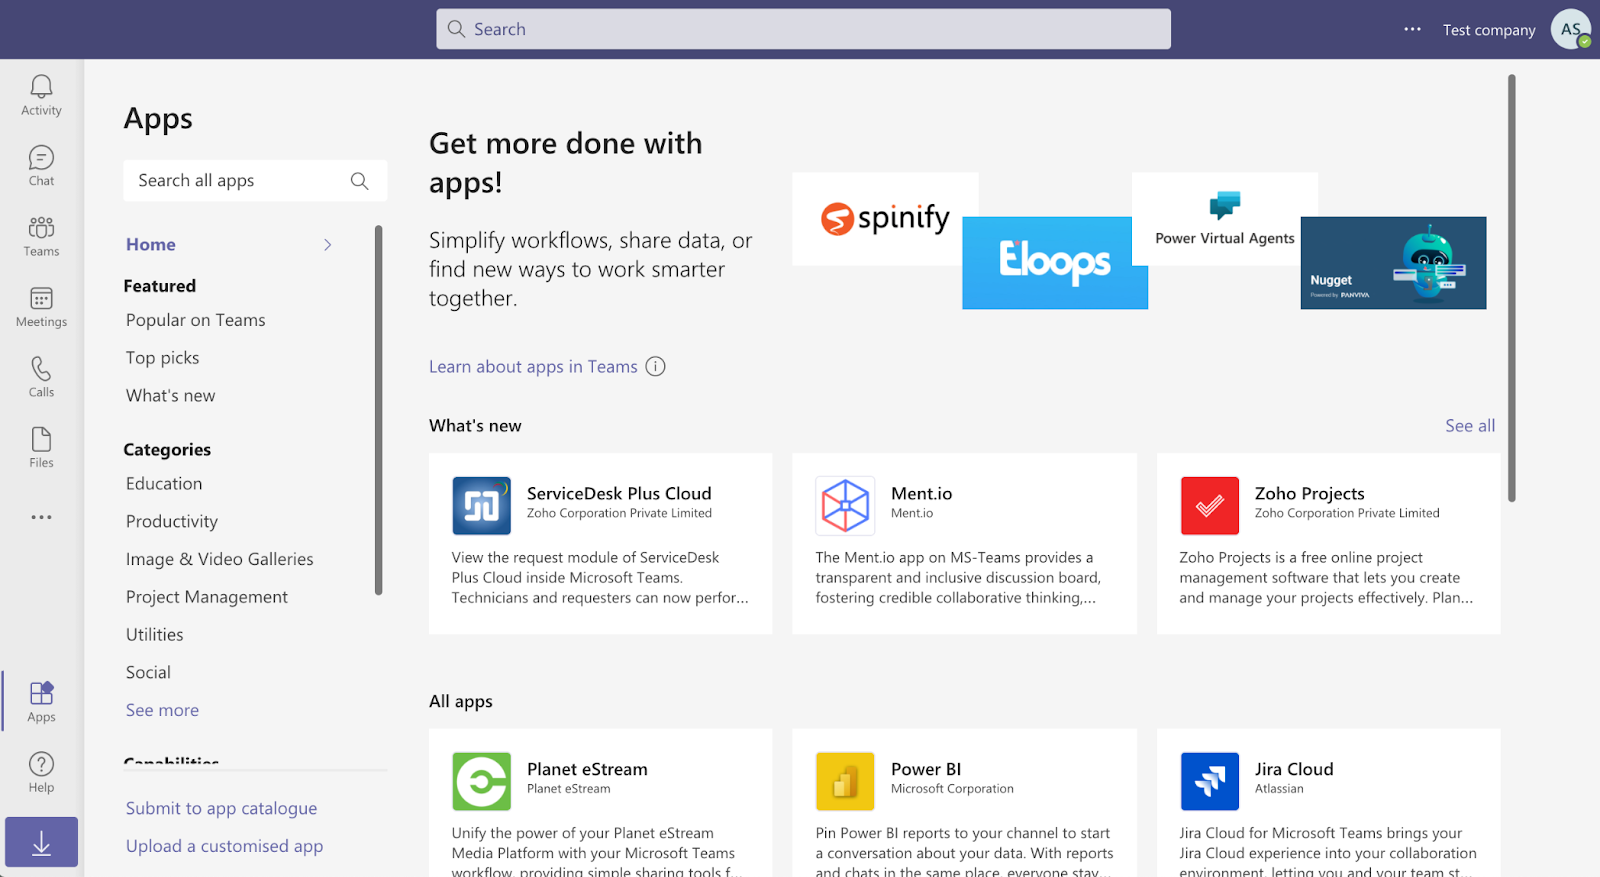 Apps section on Microsoft Teams